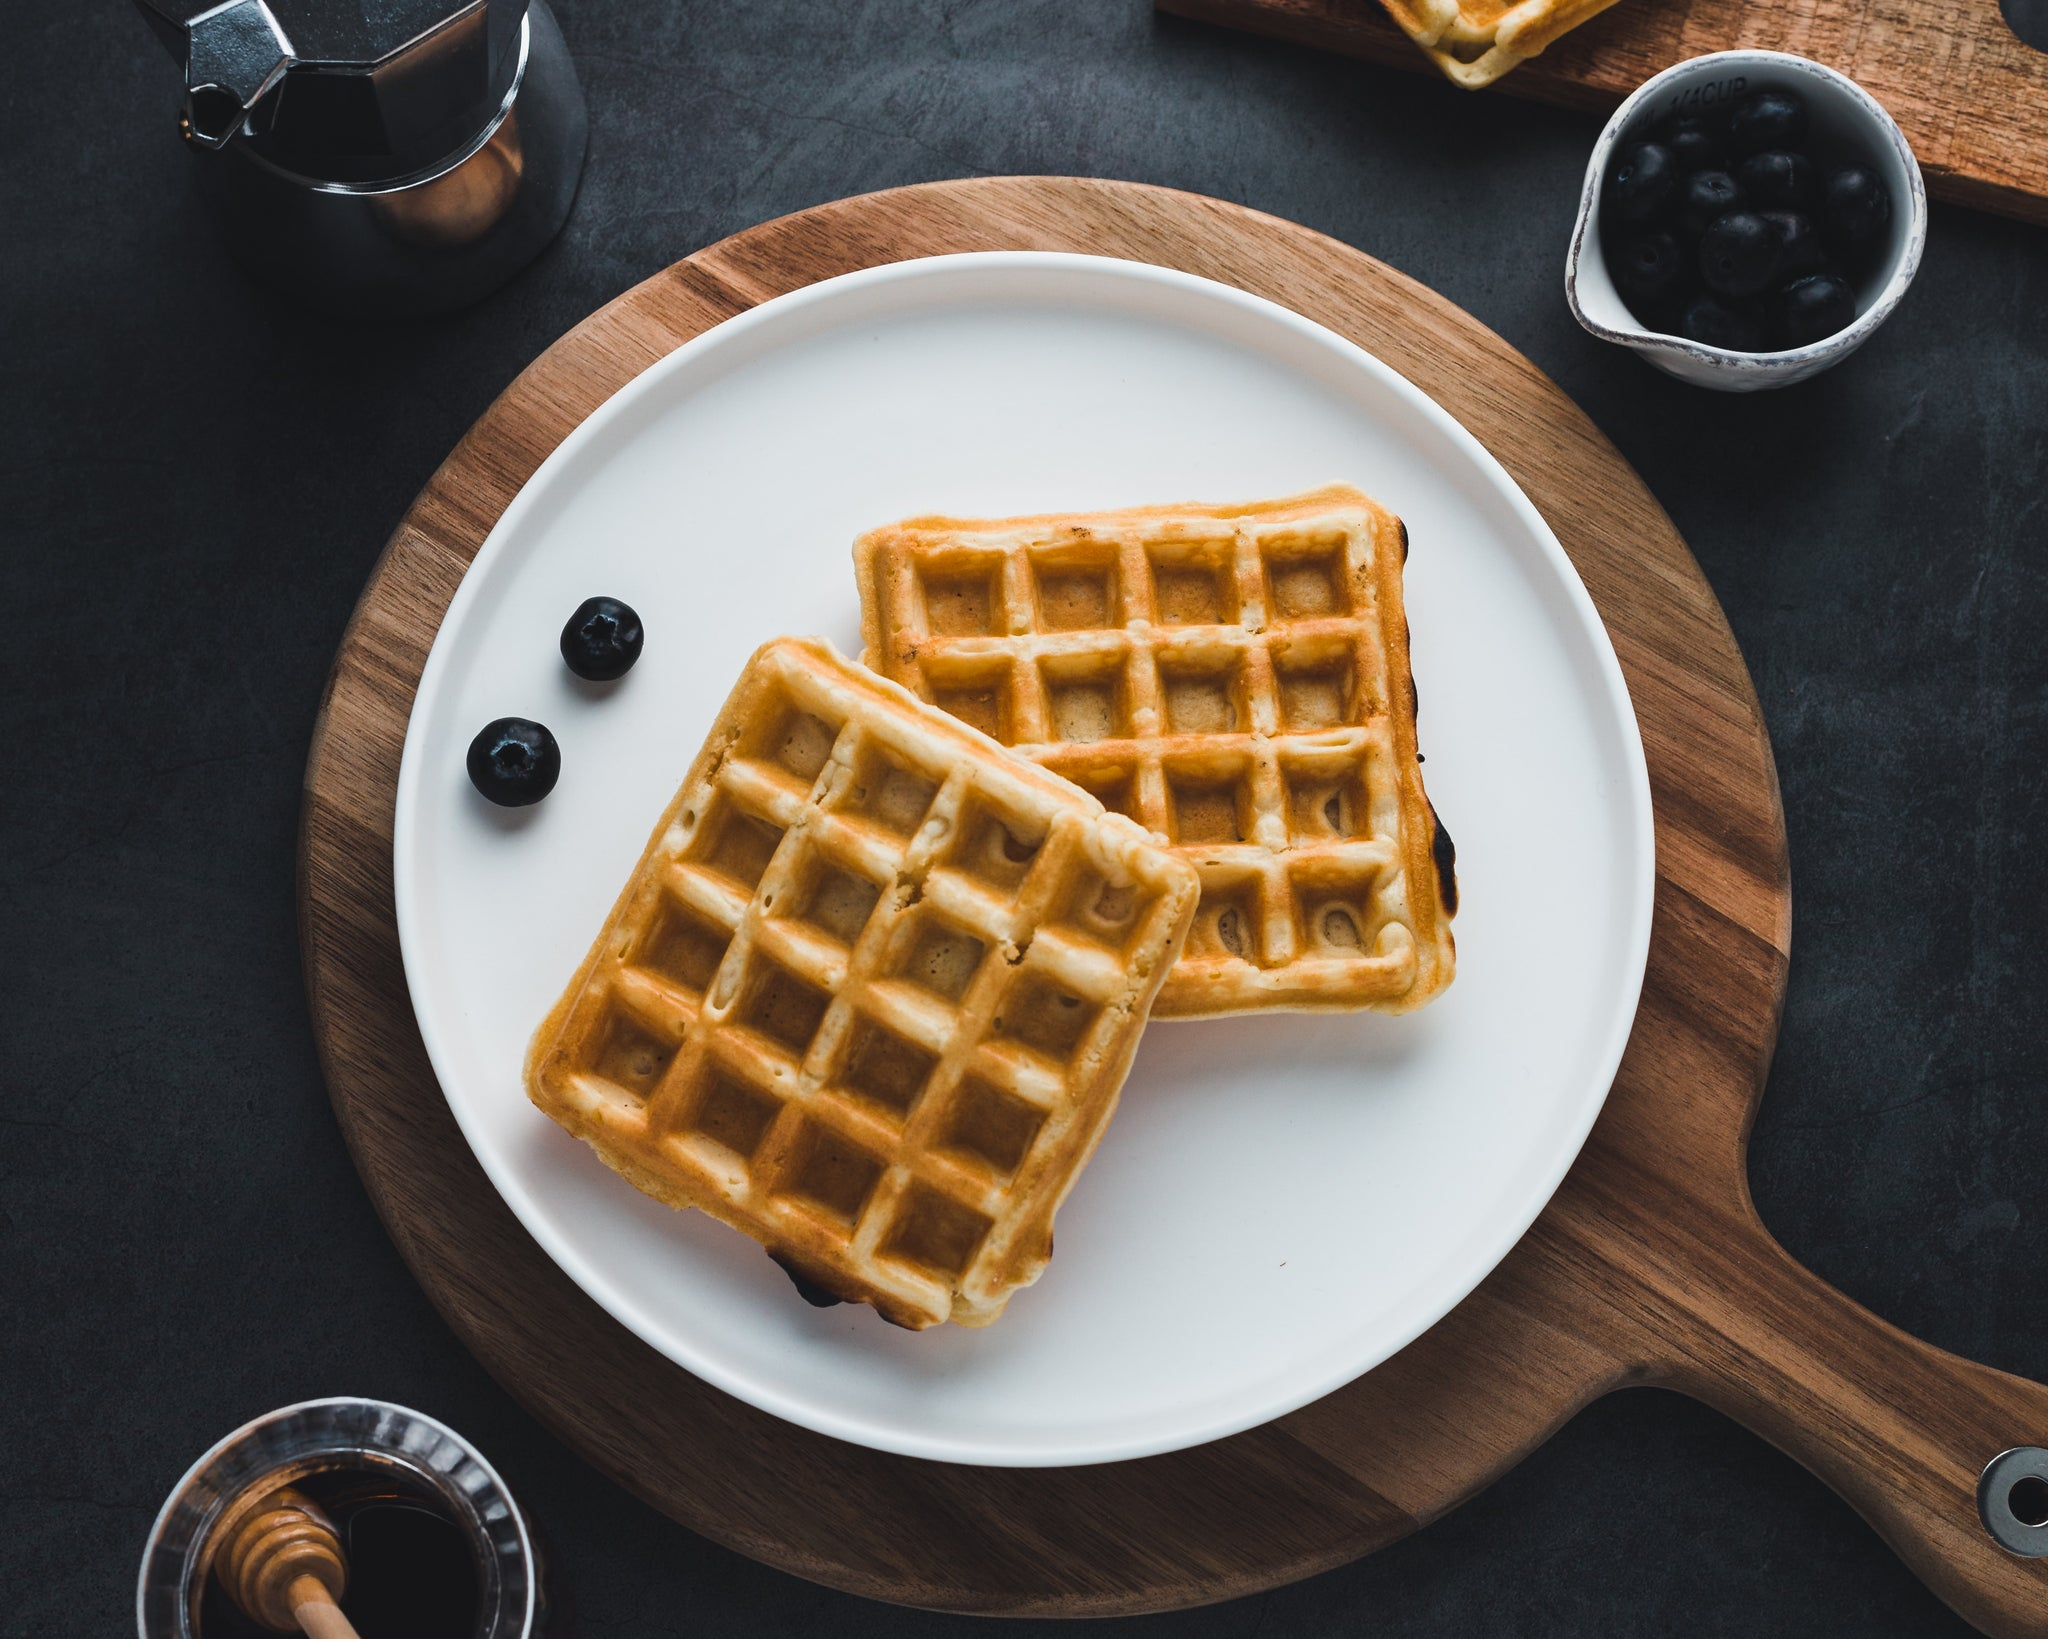 Two plain square waffles on round white plate with two blueberries to the left of waffles. Round white plate is sitting on top of a brown circular wooden pizza paddle.